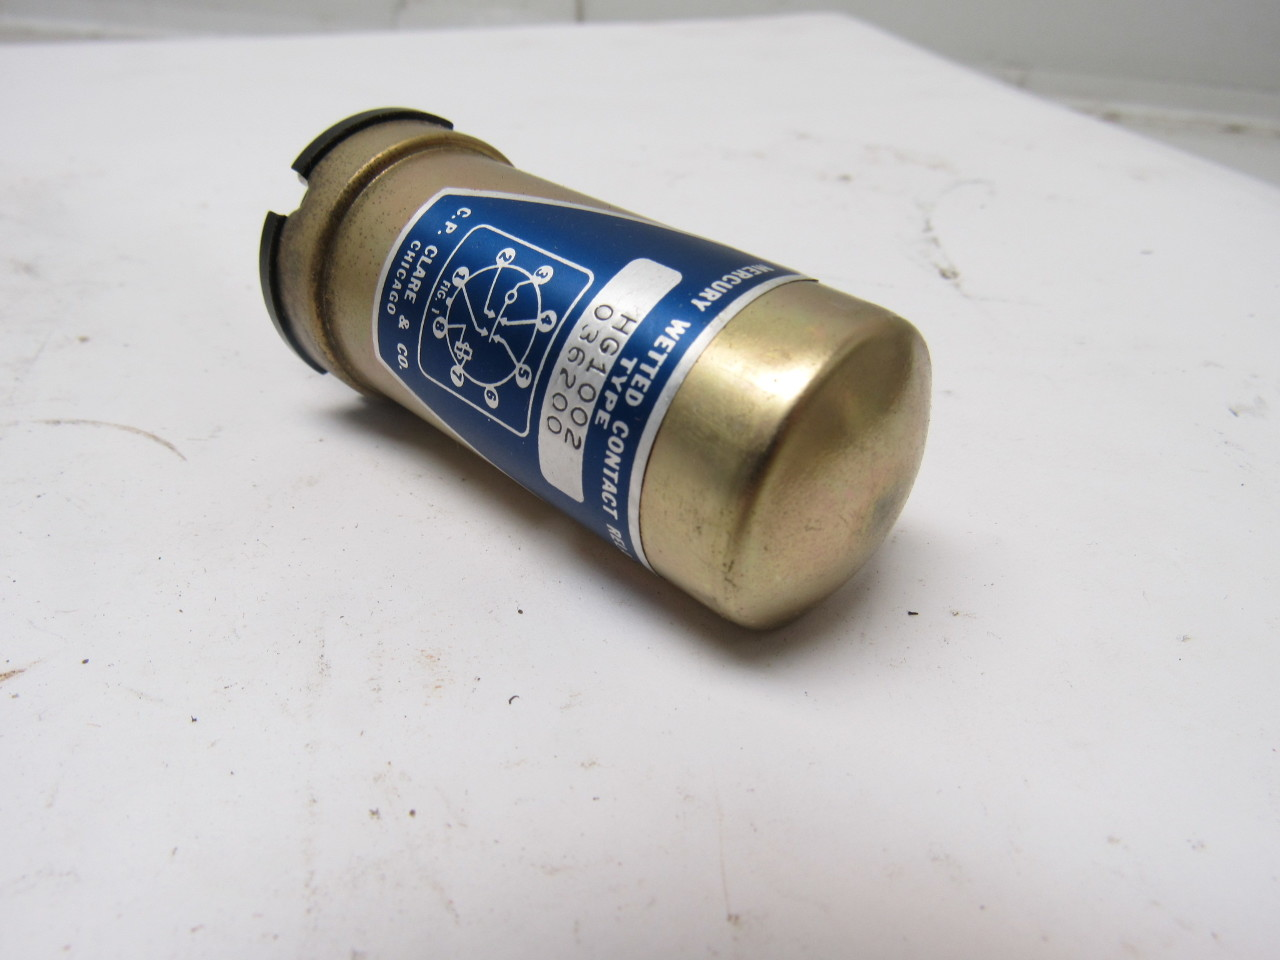 CP CLARE & CO HG-1002 8 PIN Mercury Wetted Contact Relay